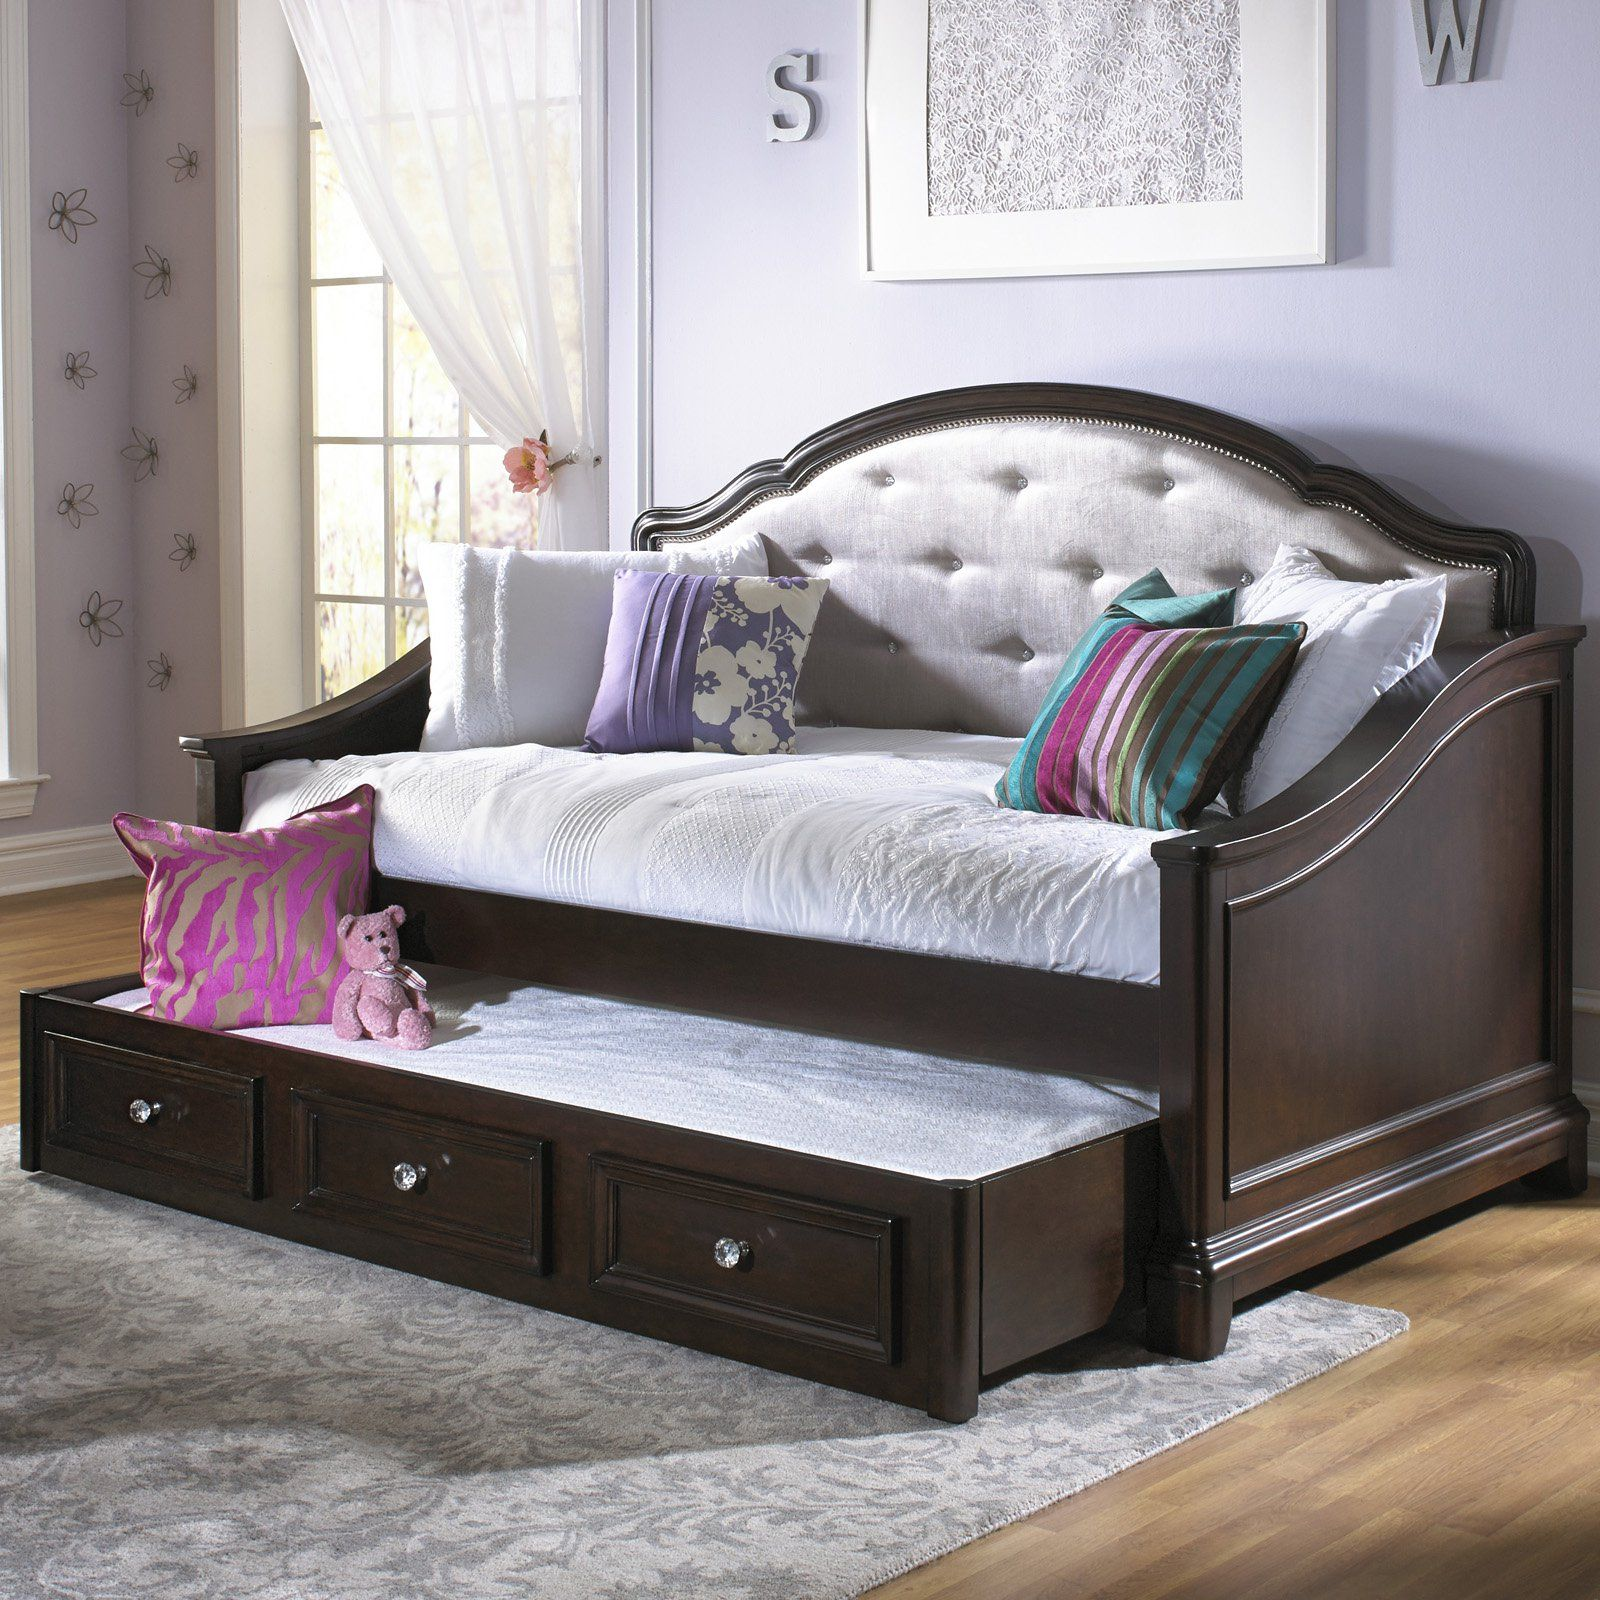 Girls Glam Daybed Dark Cherry School, band practice